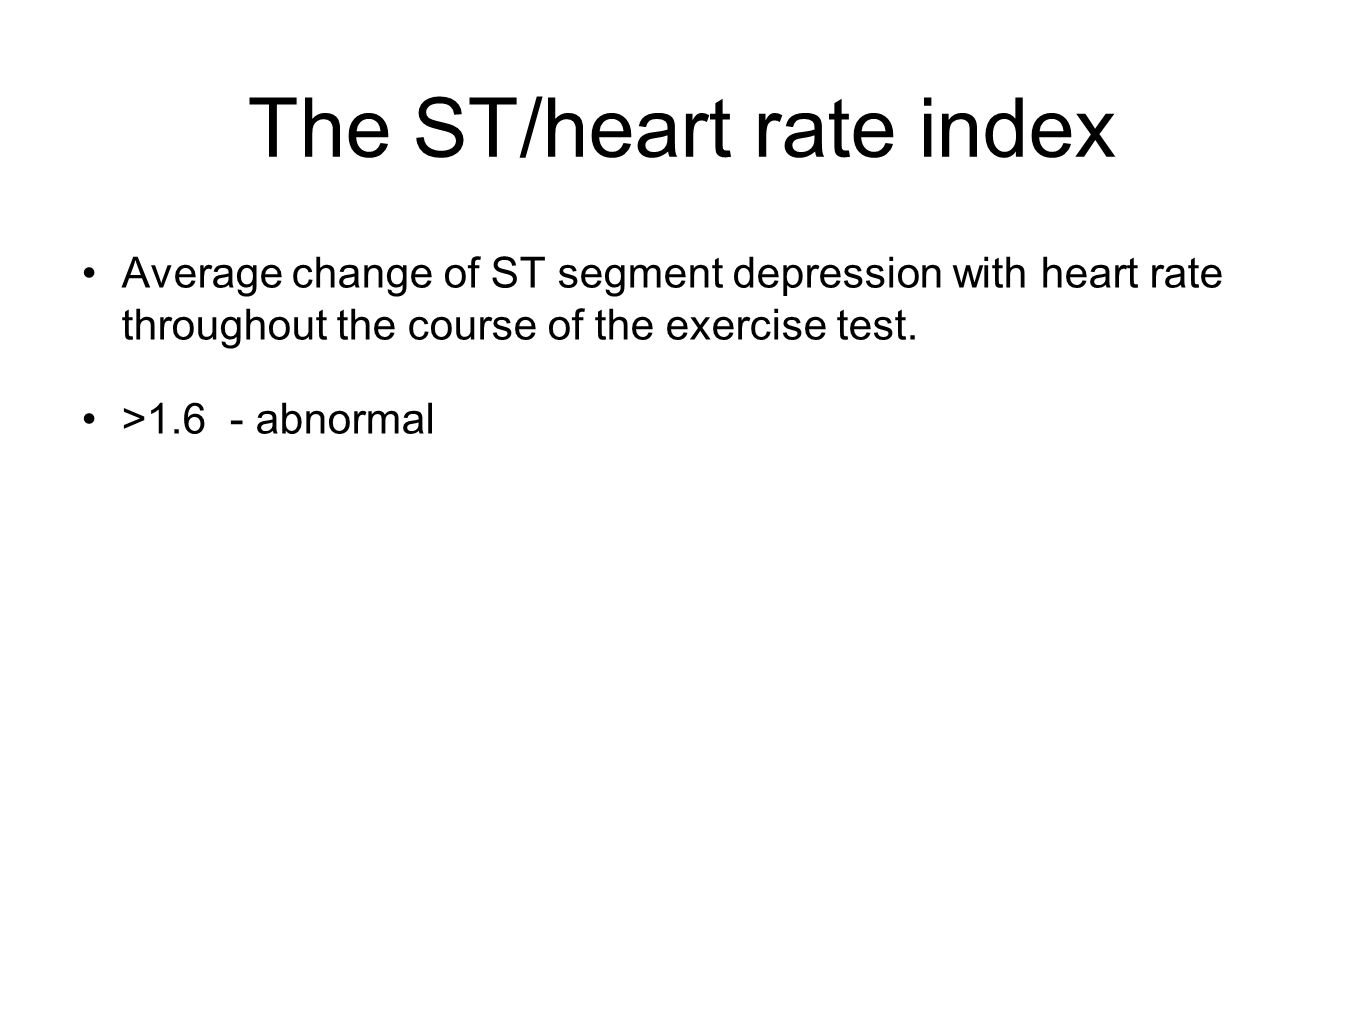 The ST/heart rate index Average change of ST segment depression with heart rate throughout the course of the exercise test. >1.6 - abnormal